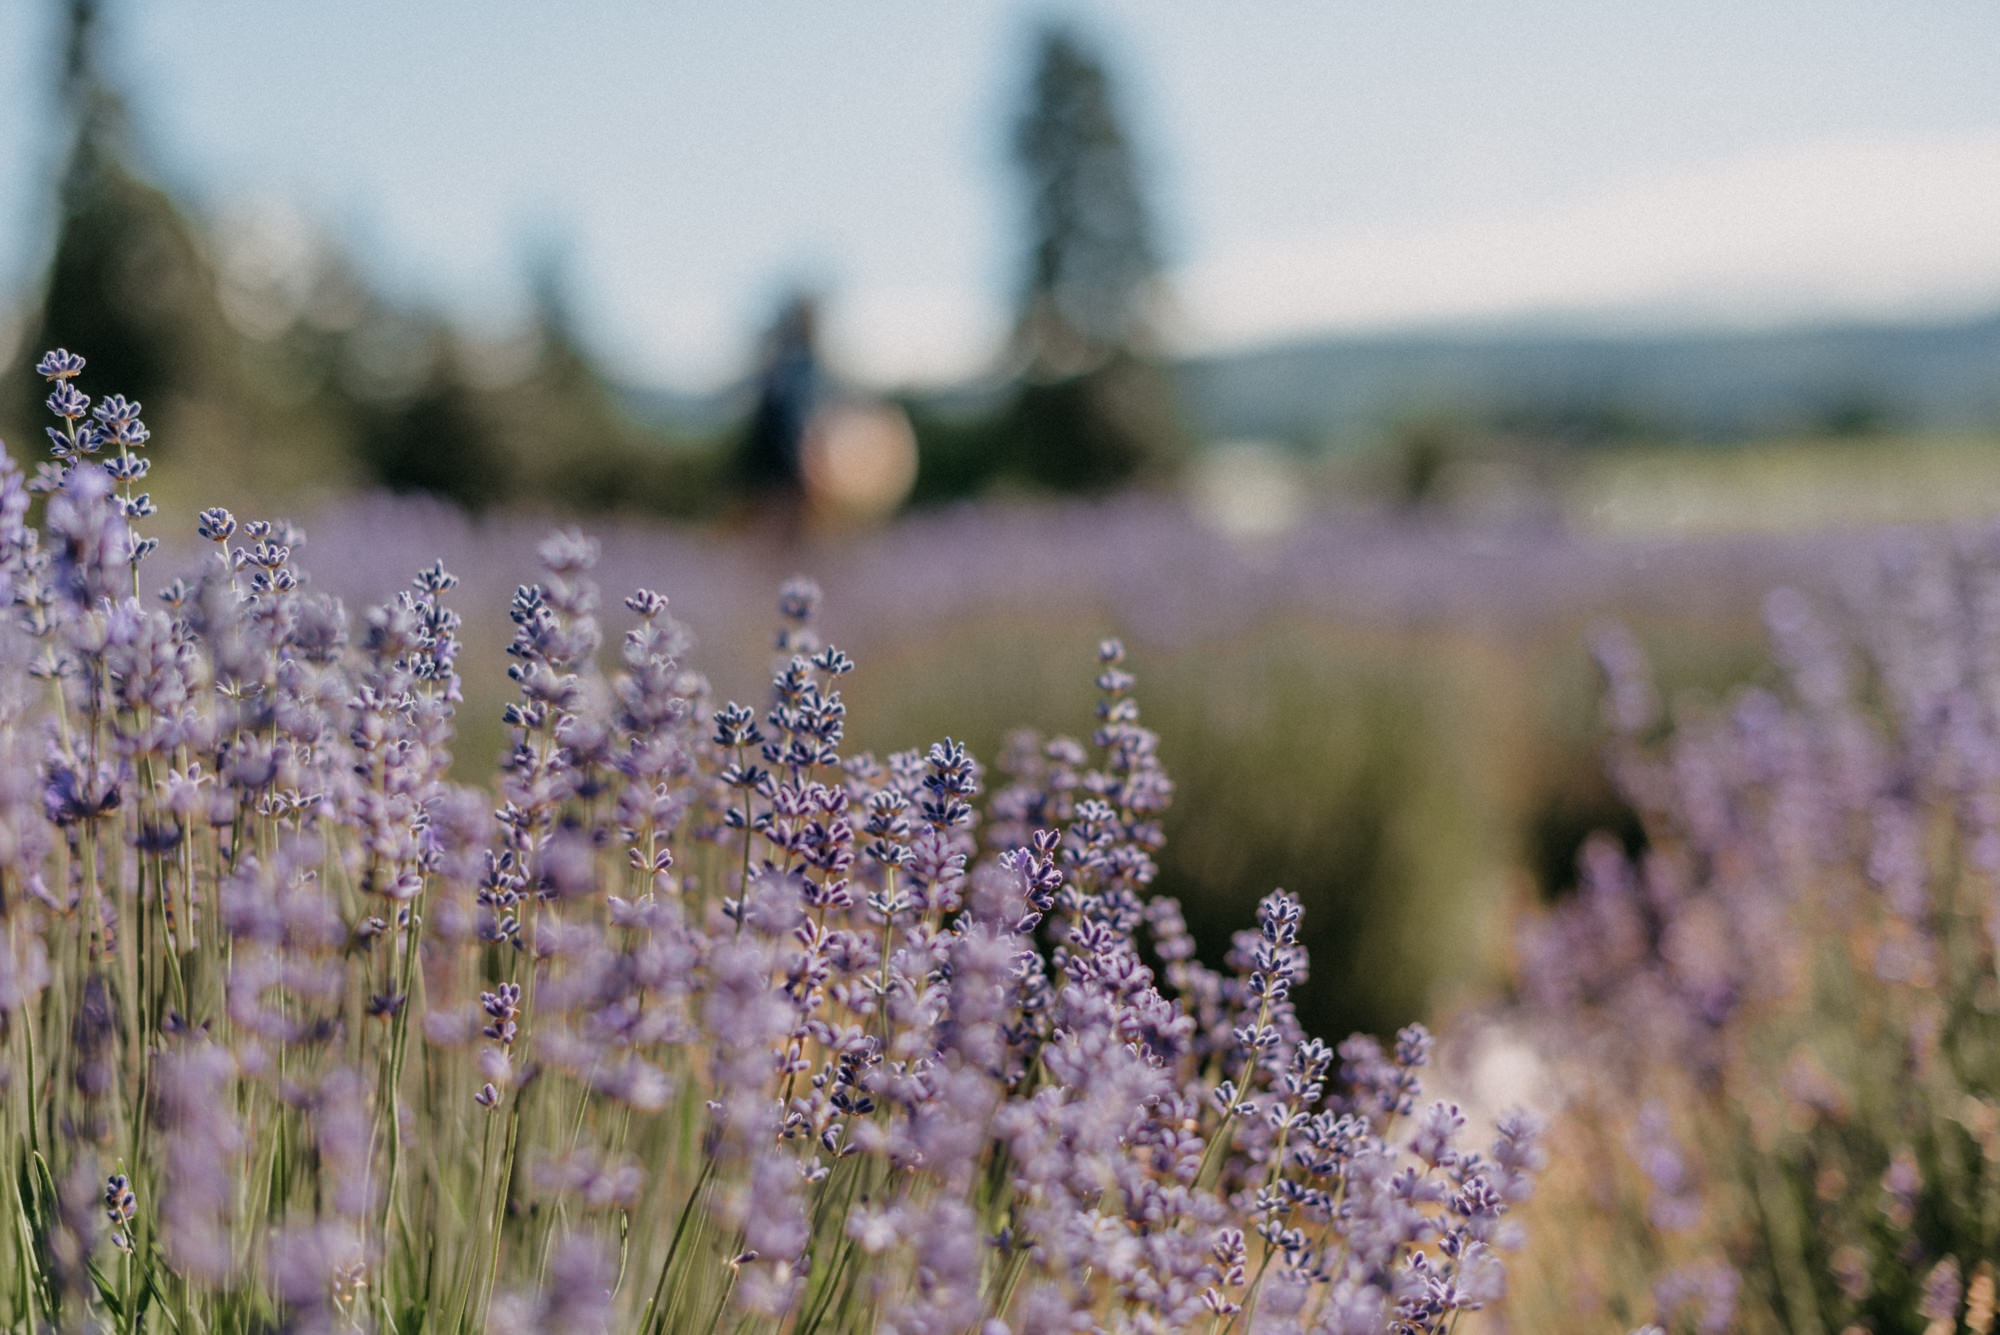 11-Mt-hood-lavender-farms-engagment-couple-summer-7197.jpg